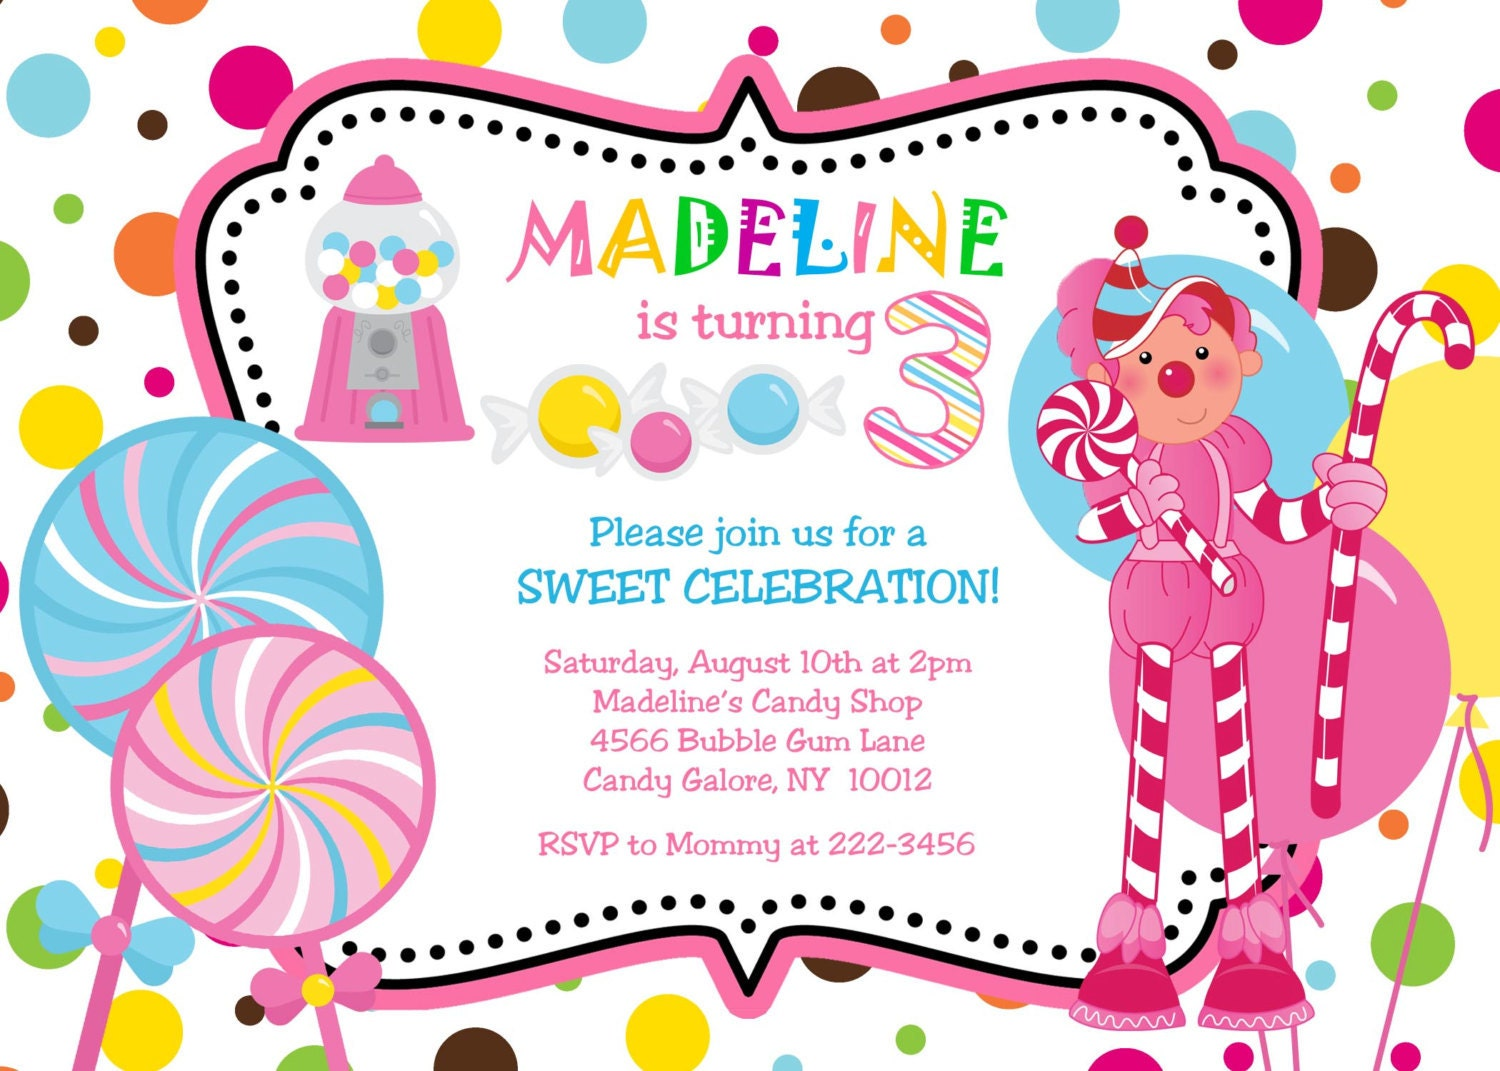 Personalized Toy Story Invitations is nice invitations ideas